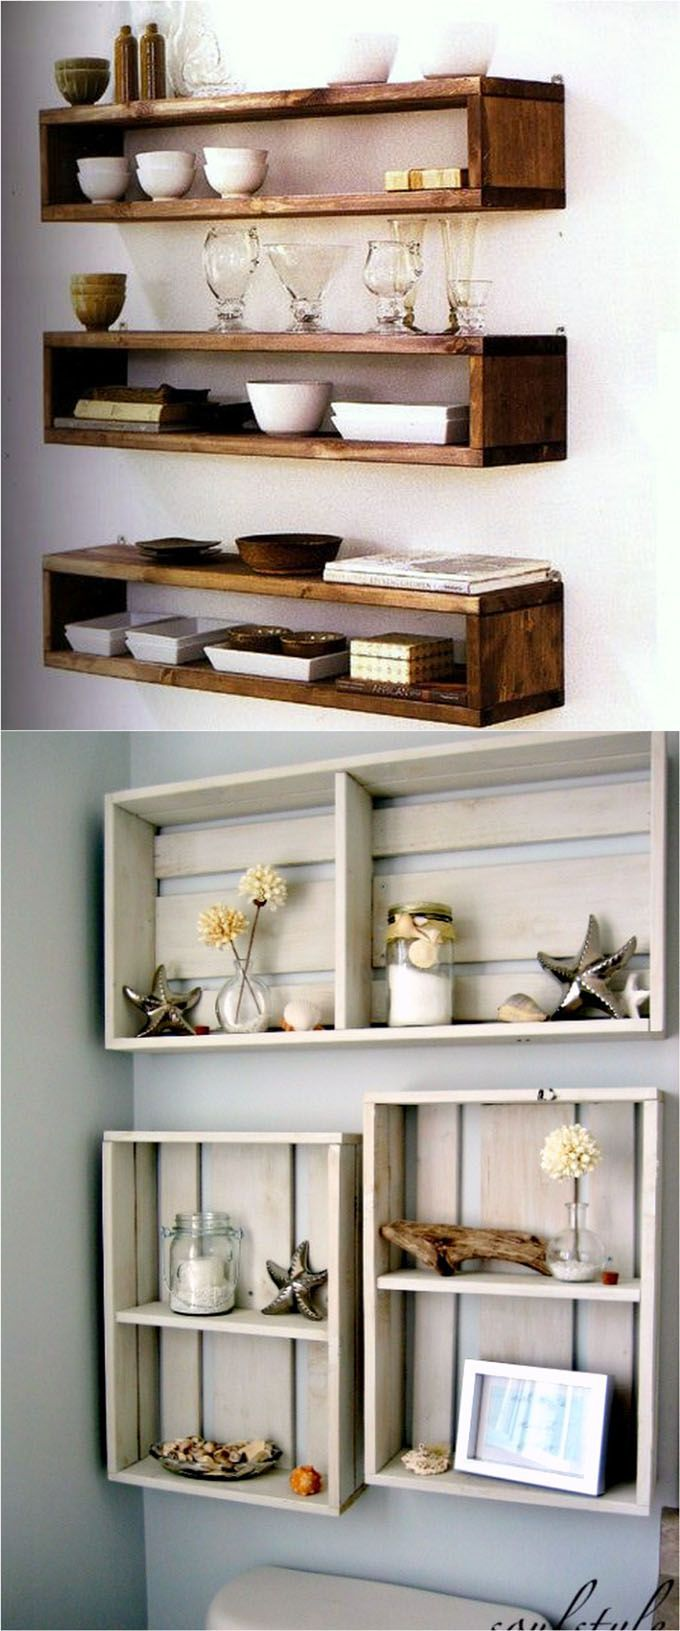 16 Easy Tutorials On Building Beautiful Floating Shelves And Wall Check Out All The Gorgeous Brackets Supports Finishes Design Inspirations